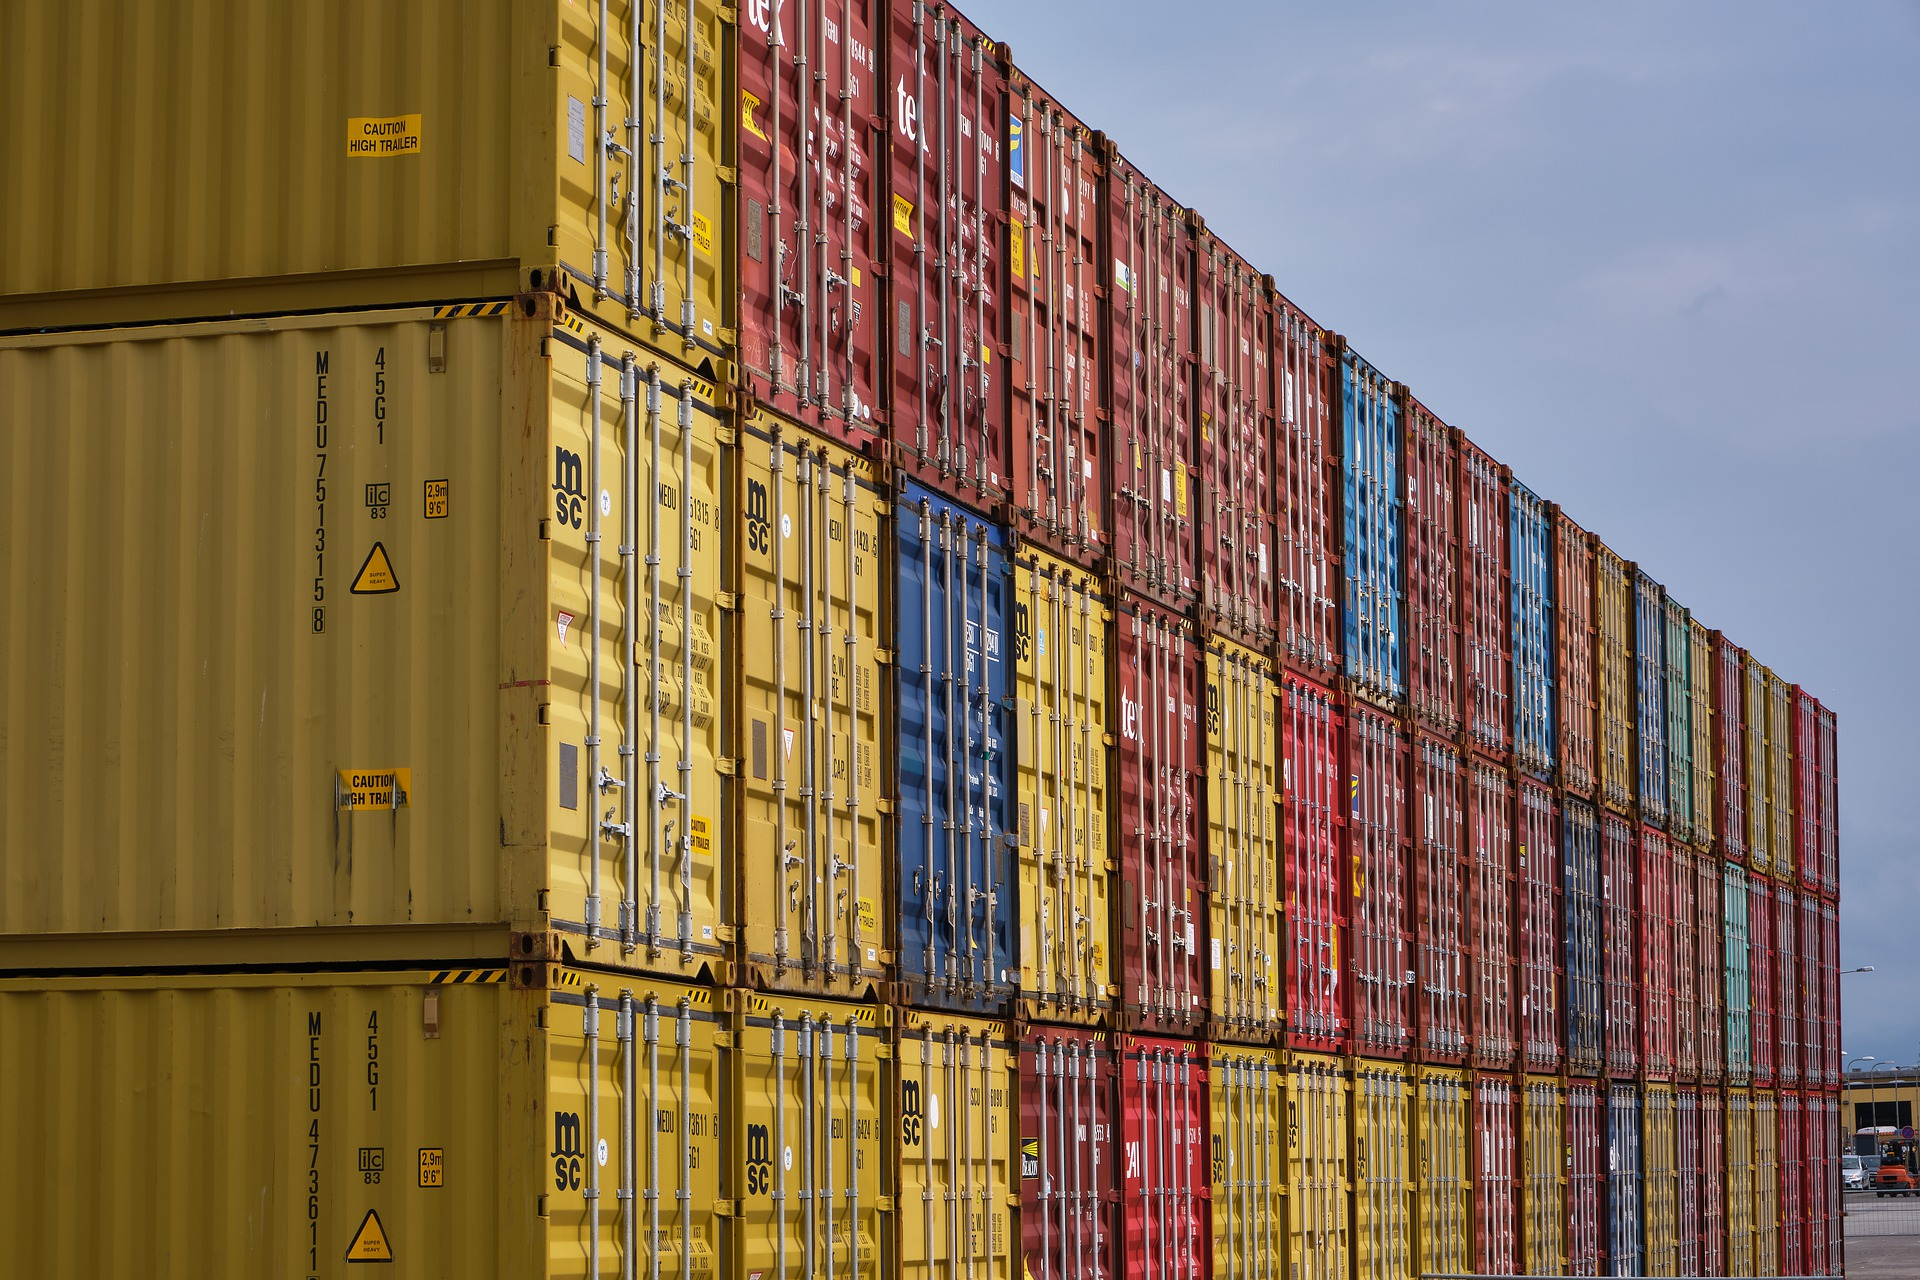 container-4675851_1920 (1)